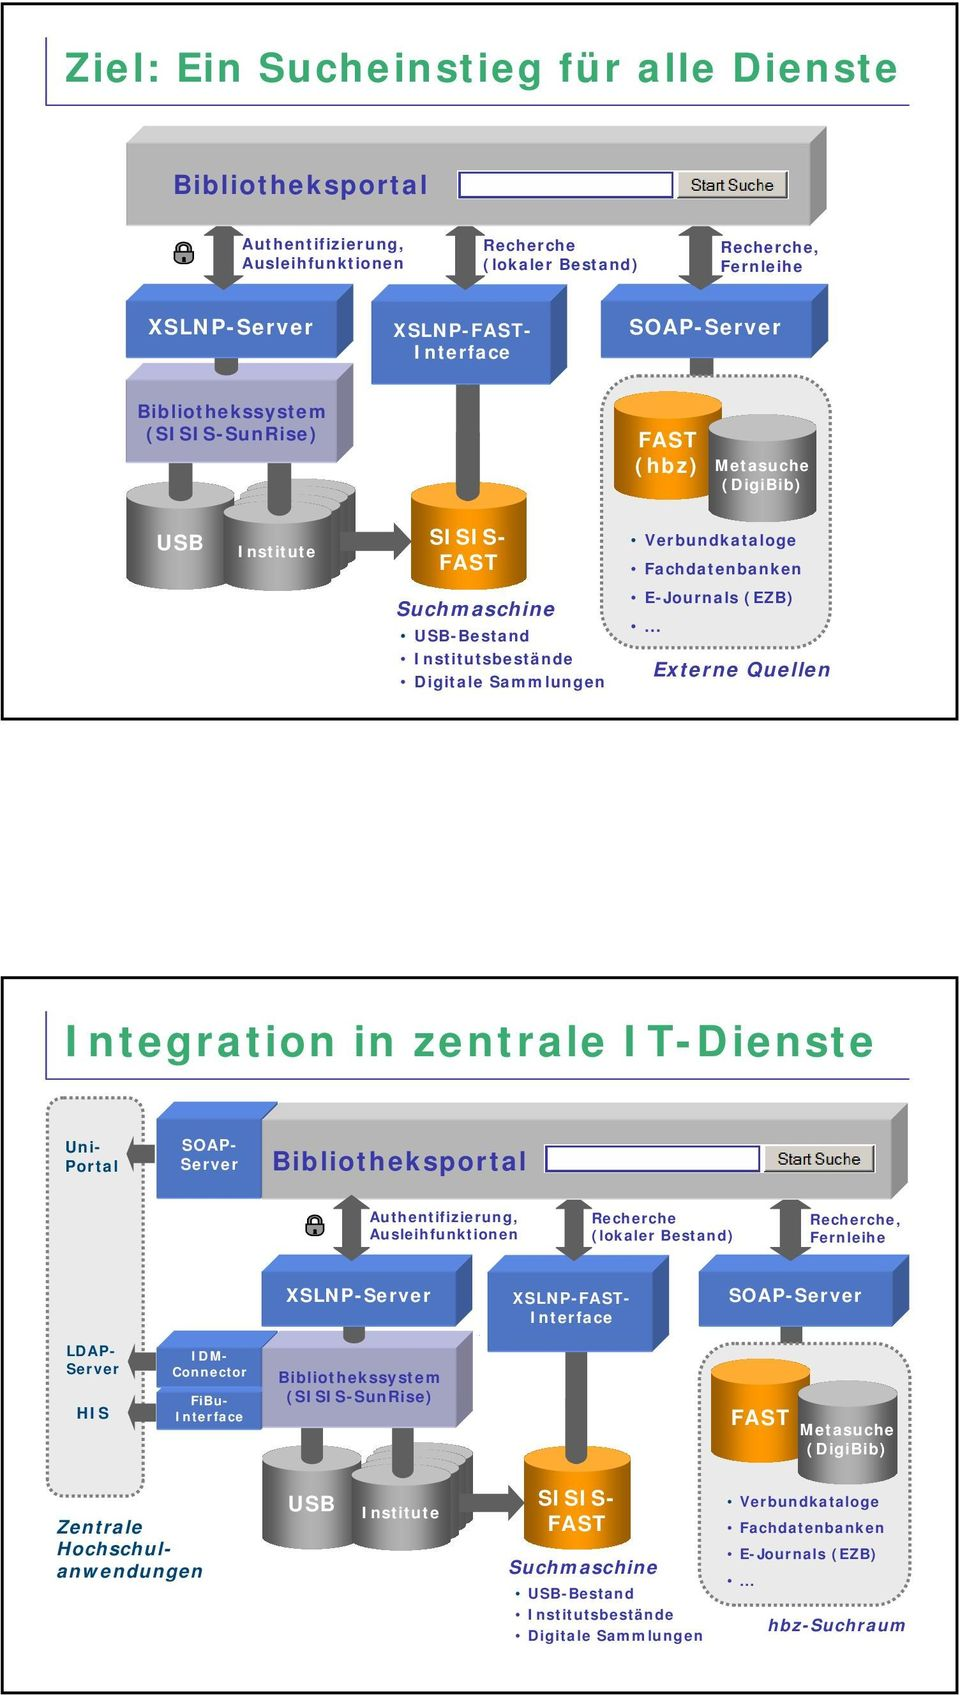 .. Externe Quellen Integration in zentrale IT-Dienste Uni- Portal SOAP- Server Bibliotheksportal Authentifizierung, Ausleihfunktionen Recherche (lokaler Bestand) Recherche, Fernleihe XSLNP-Server